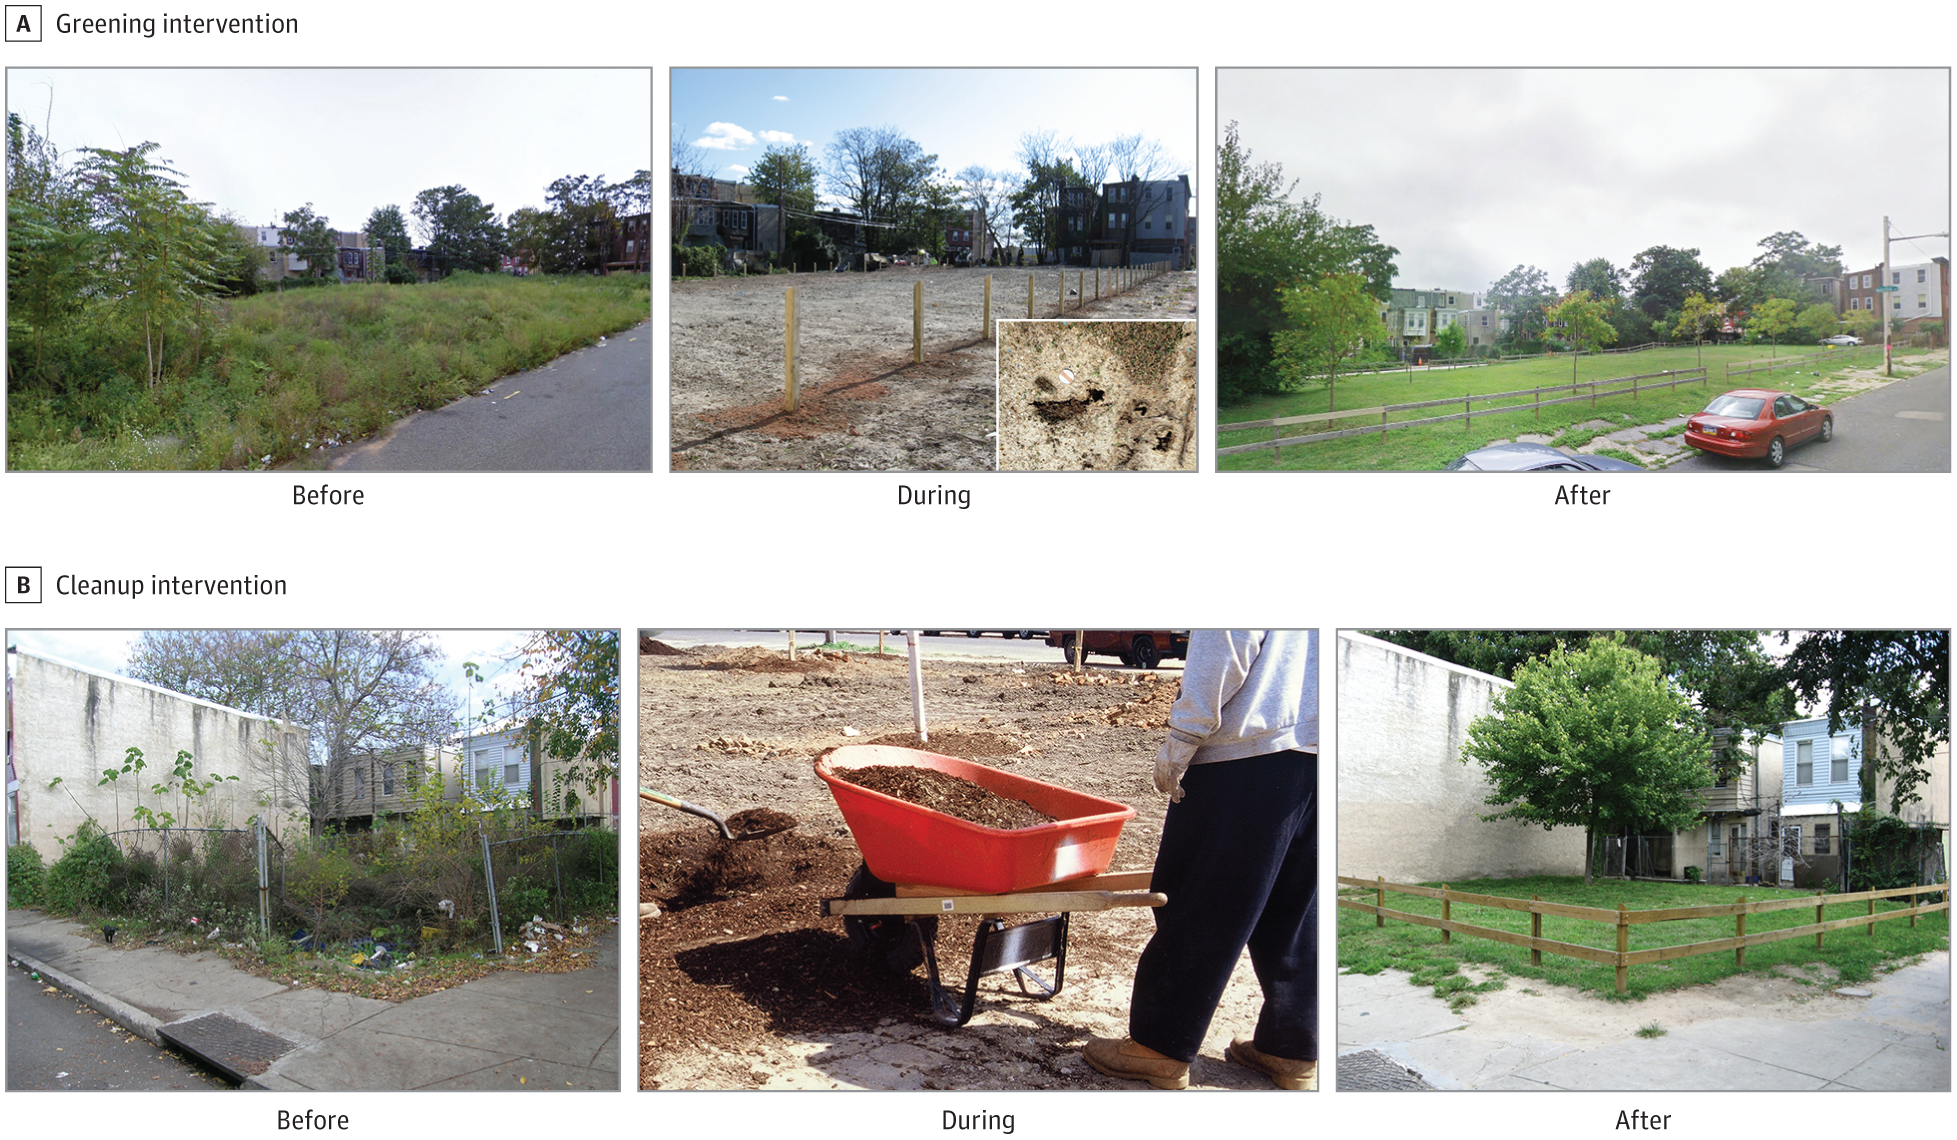 Greening vacant lots reduces depression in city dwellers | Penn Today